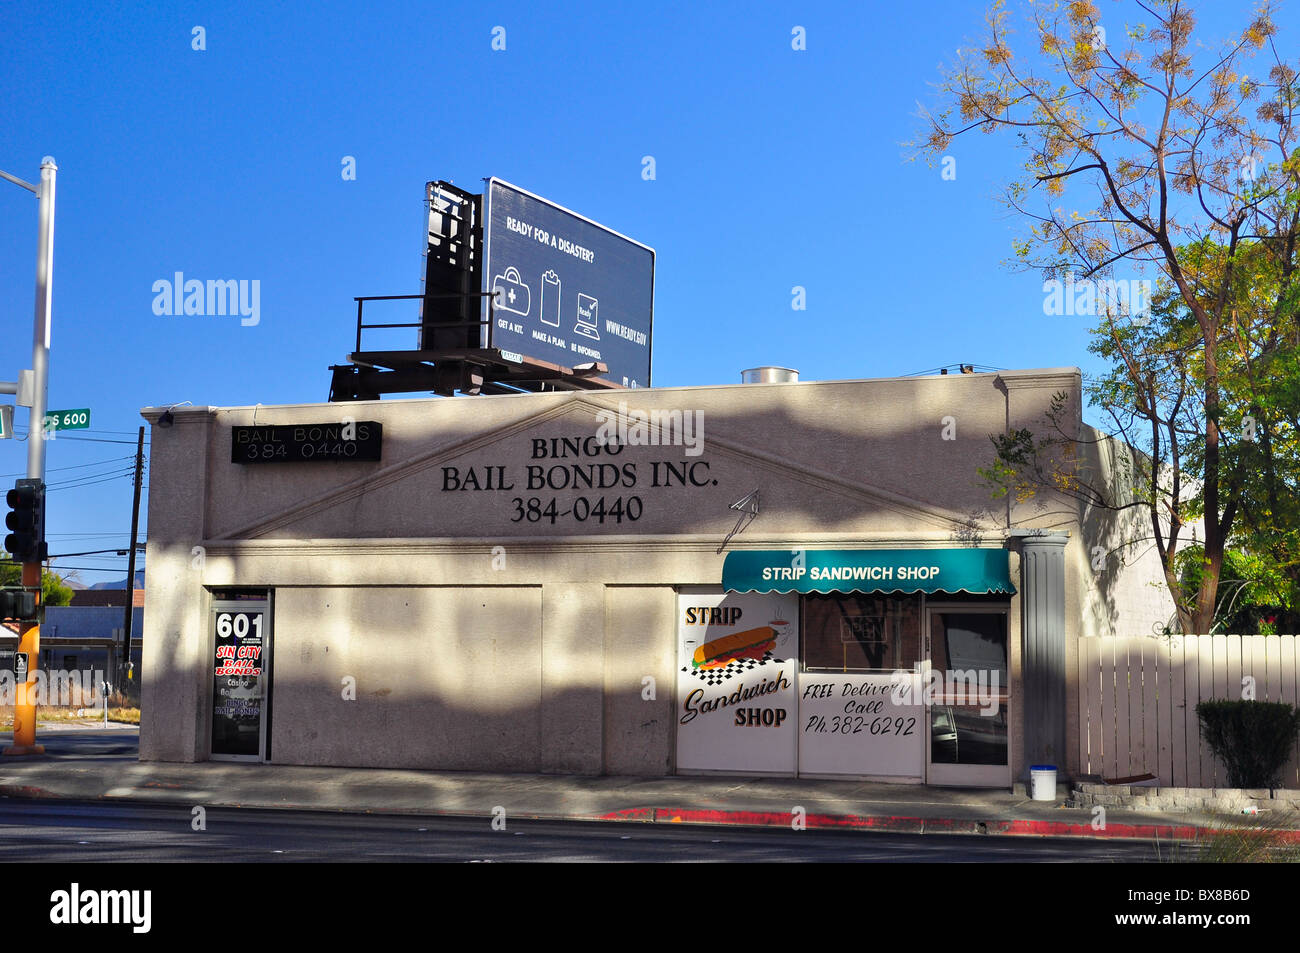 Las Vegas, Bingo Bail Bonds & Soup shop, Las Vegas, Nevada, USA - Stock Image